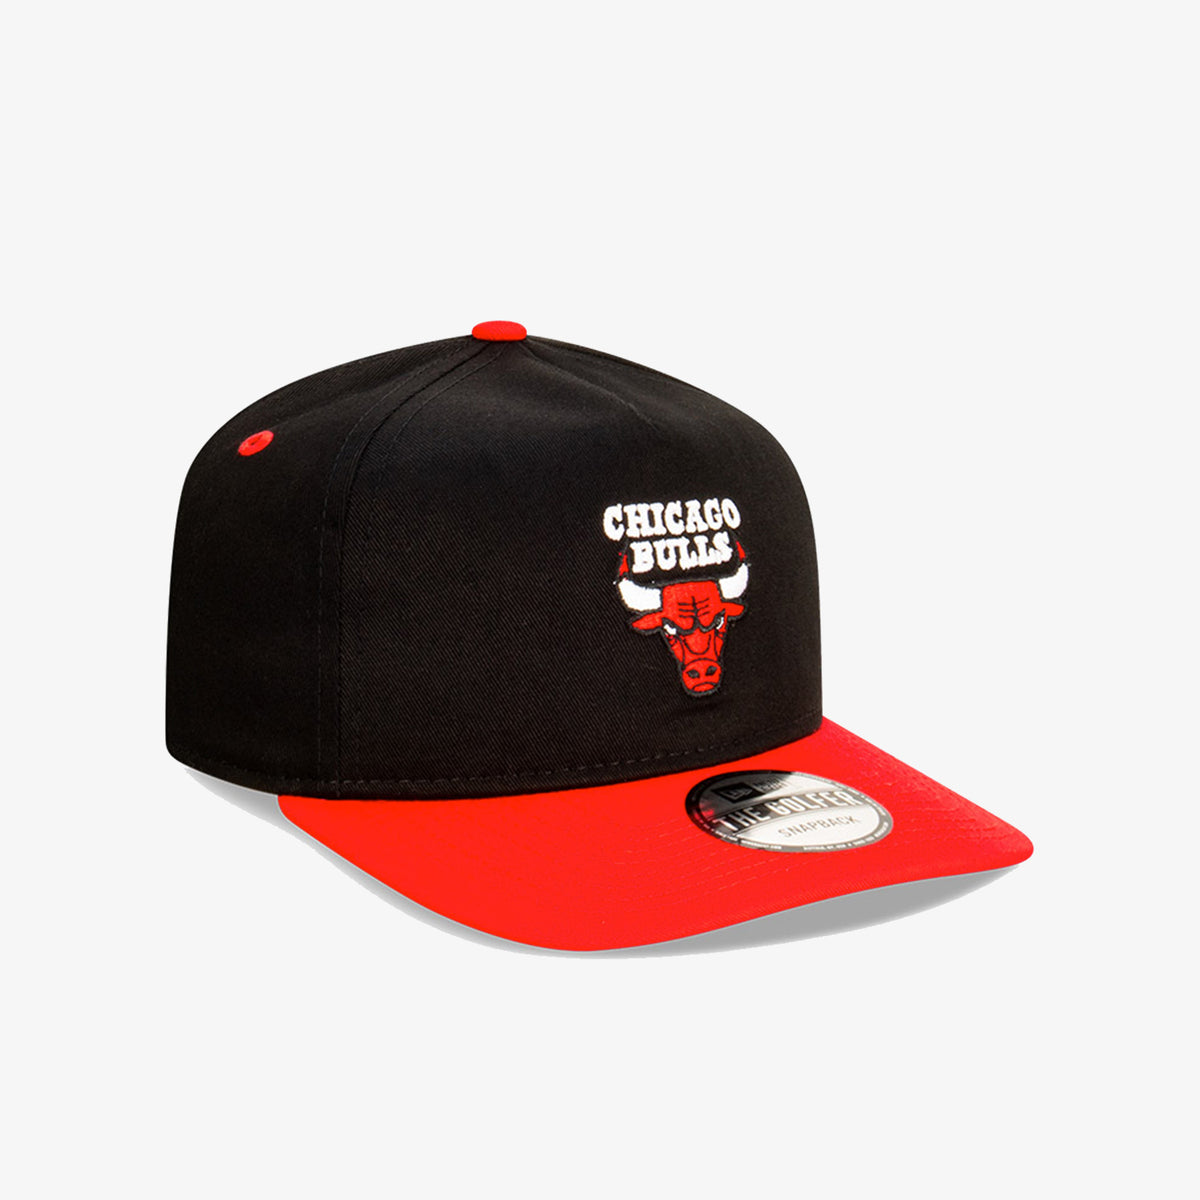 Chicago Bulls Golfer Snapback - Black